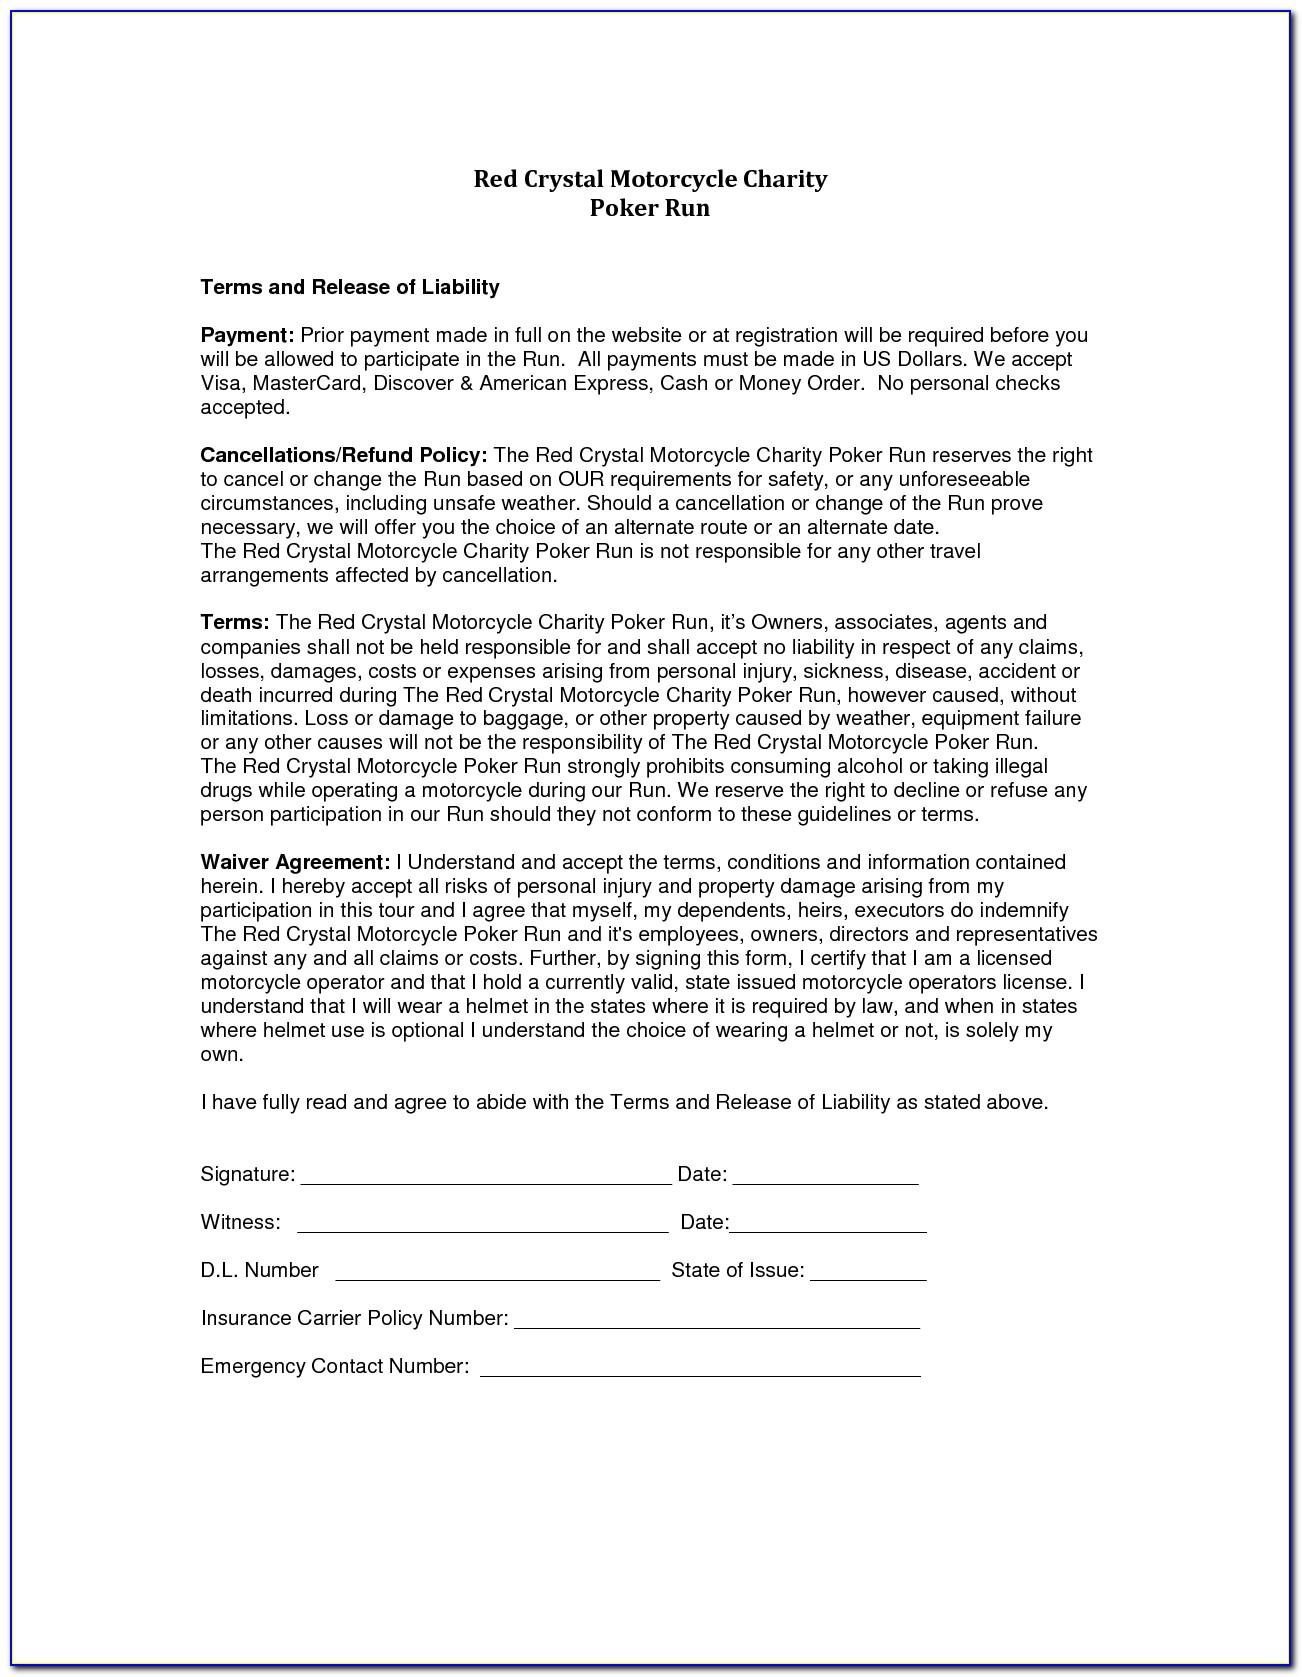 Liability Waiver Release Form Printable